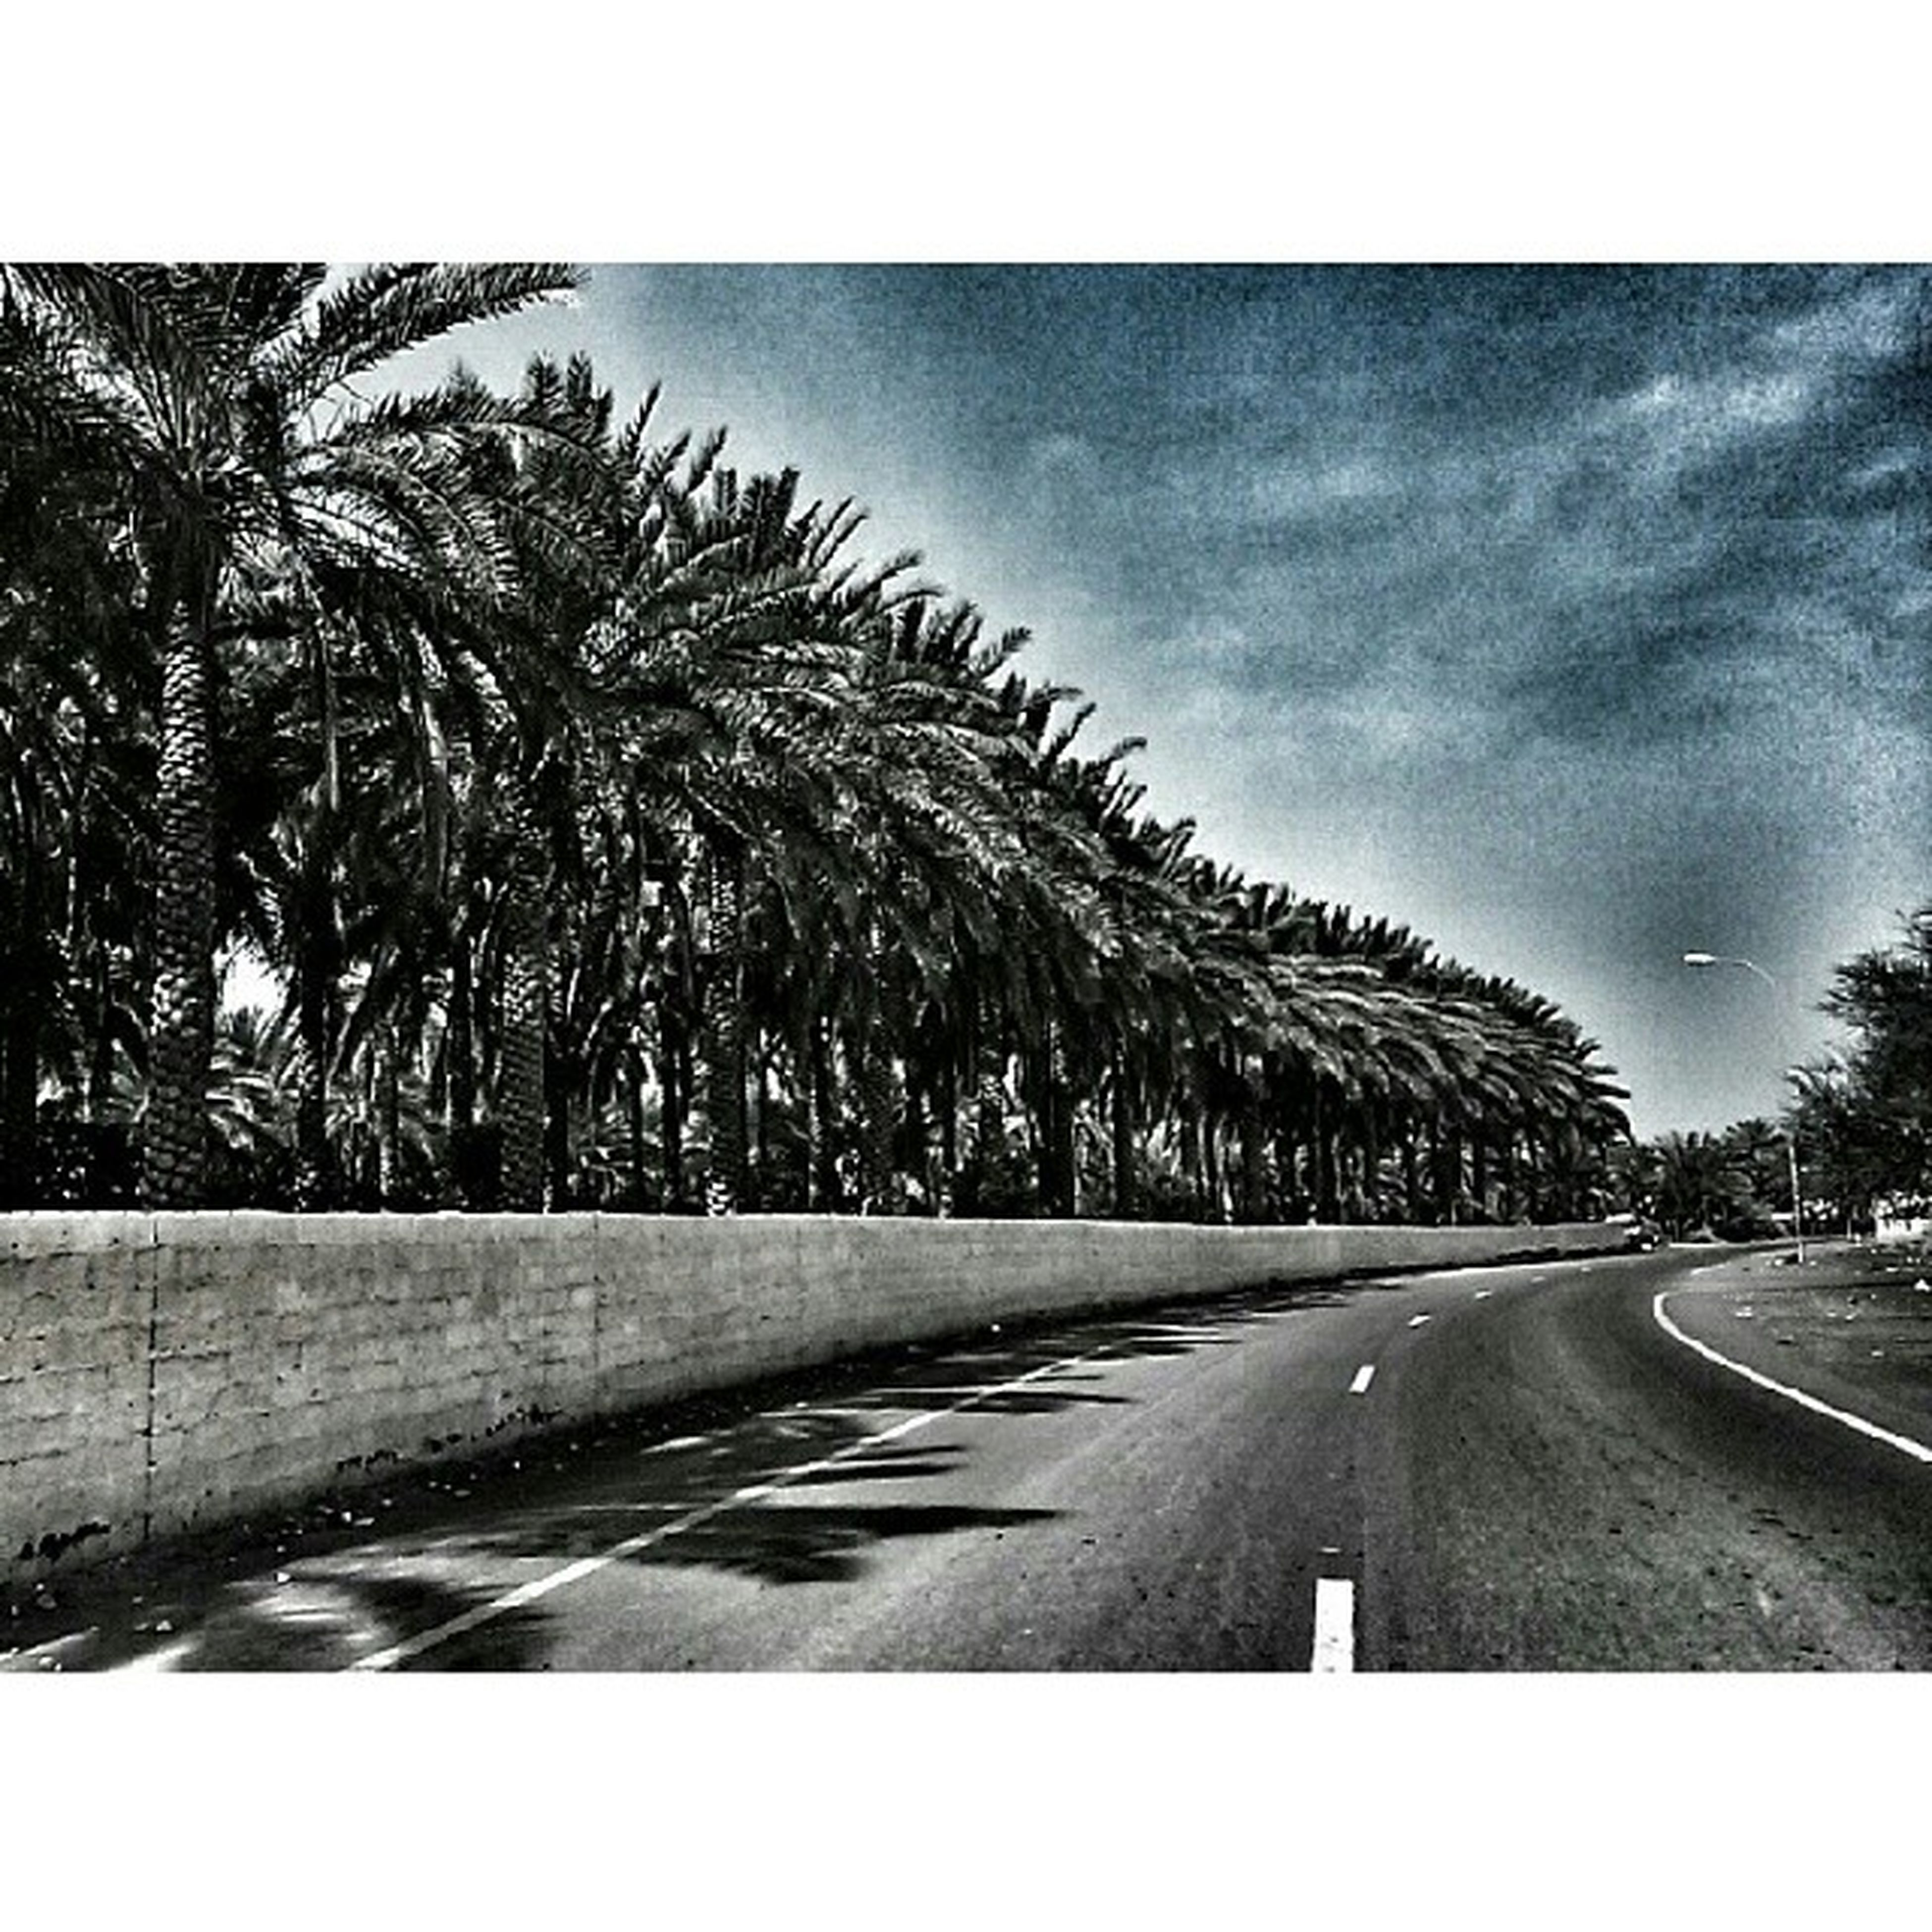 road, transportation, the way forward, road marking, transfer print, diminishing perspective, tree, sky, vanishing point, auto post production filter, street, country road, asphalt, empty road, palm tree, long, cloud - sky, car, nature, outdoors